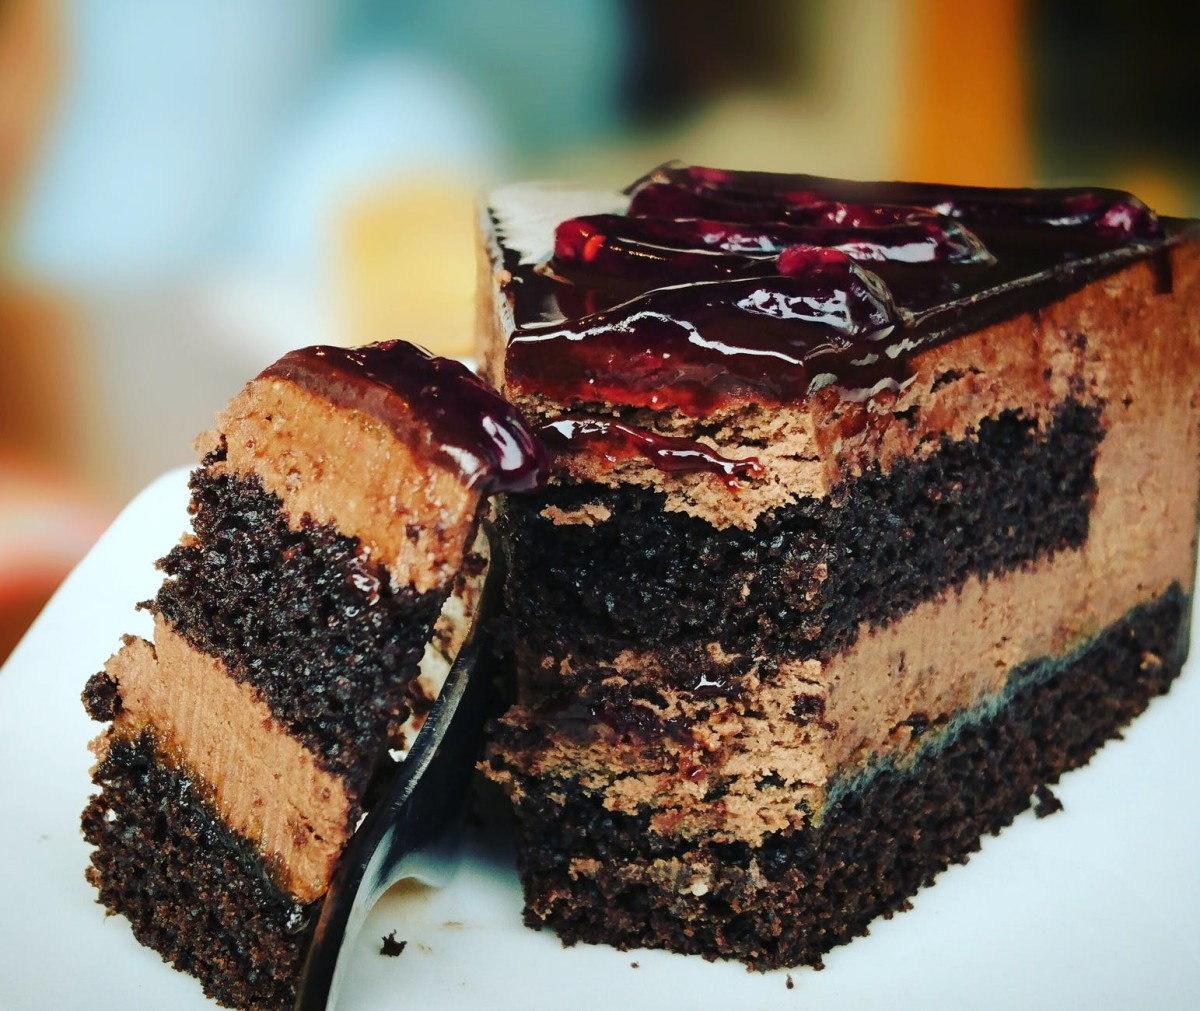 Staring at this delicious chocolate cake will make you hungry.